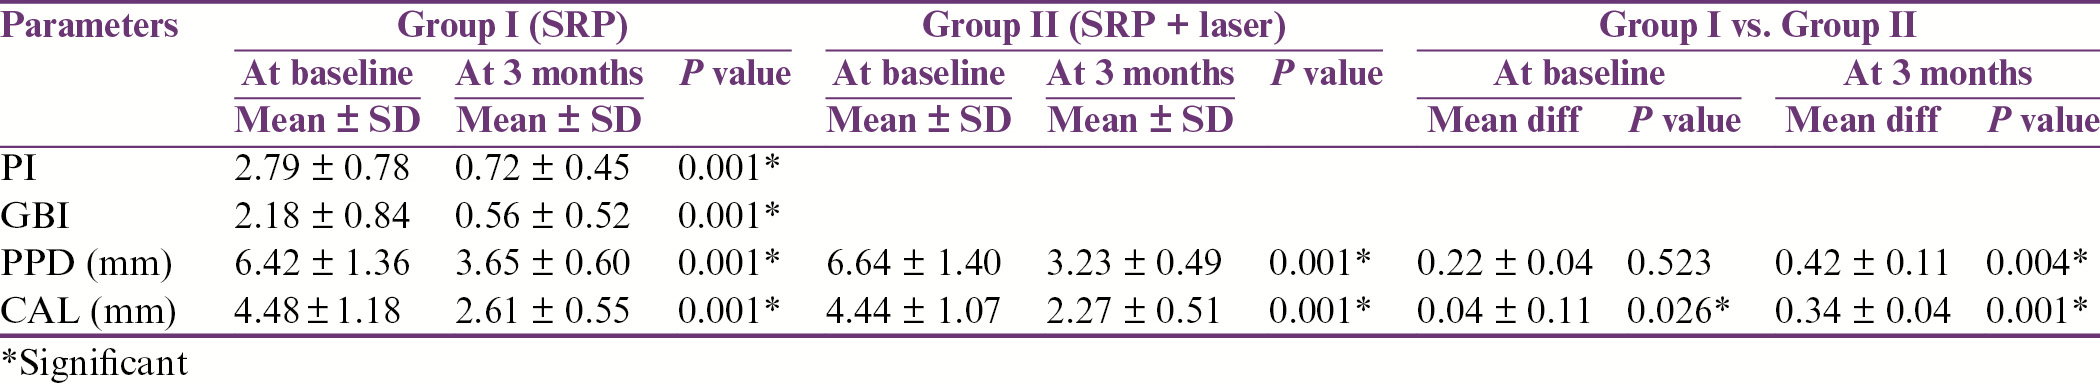 Table 2: Comparison of clinical parameters—Group I and Group II